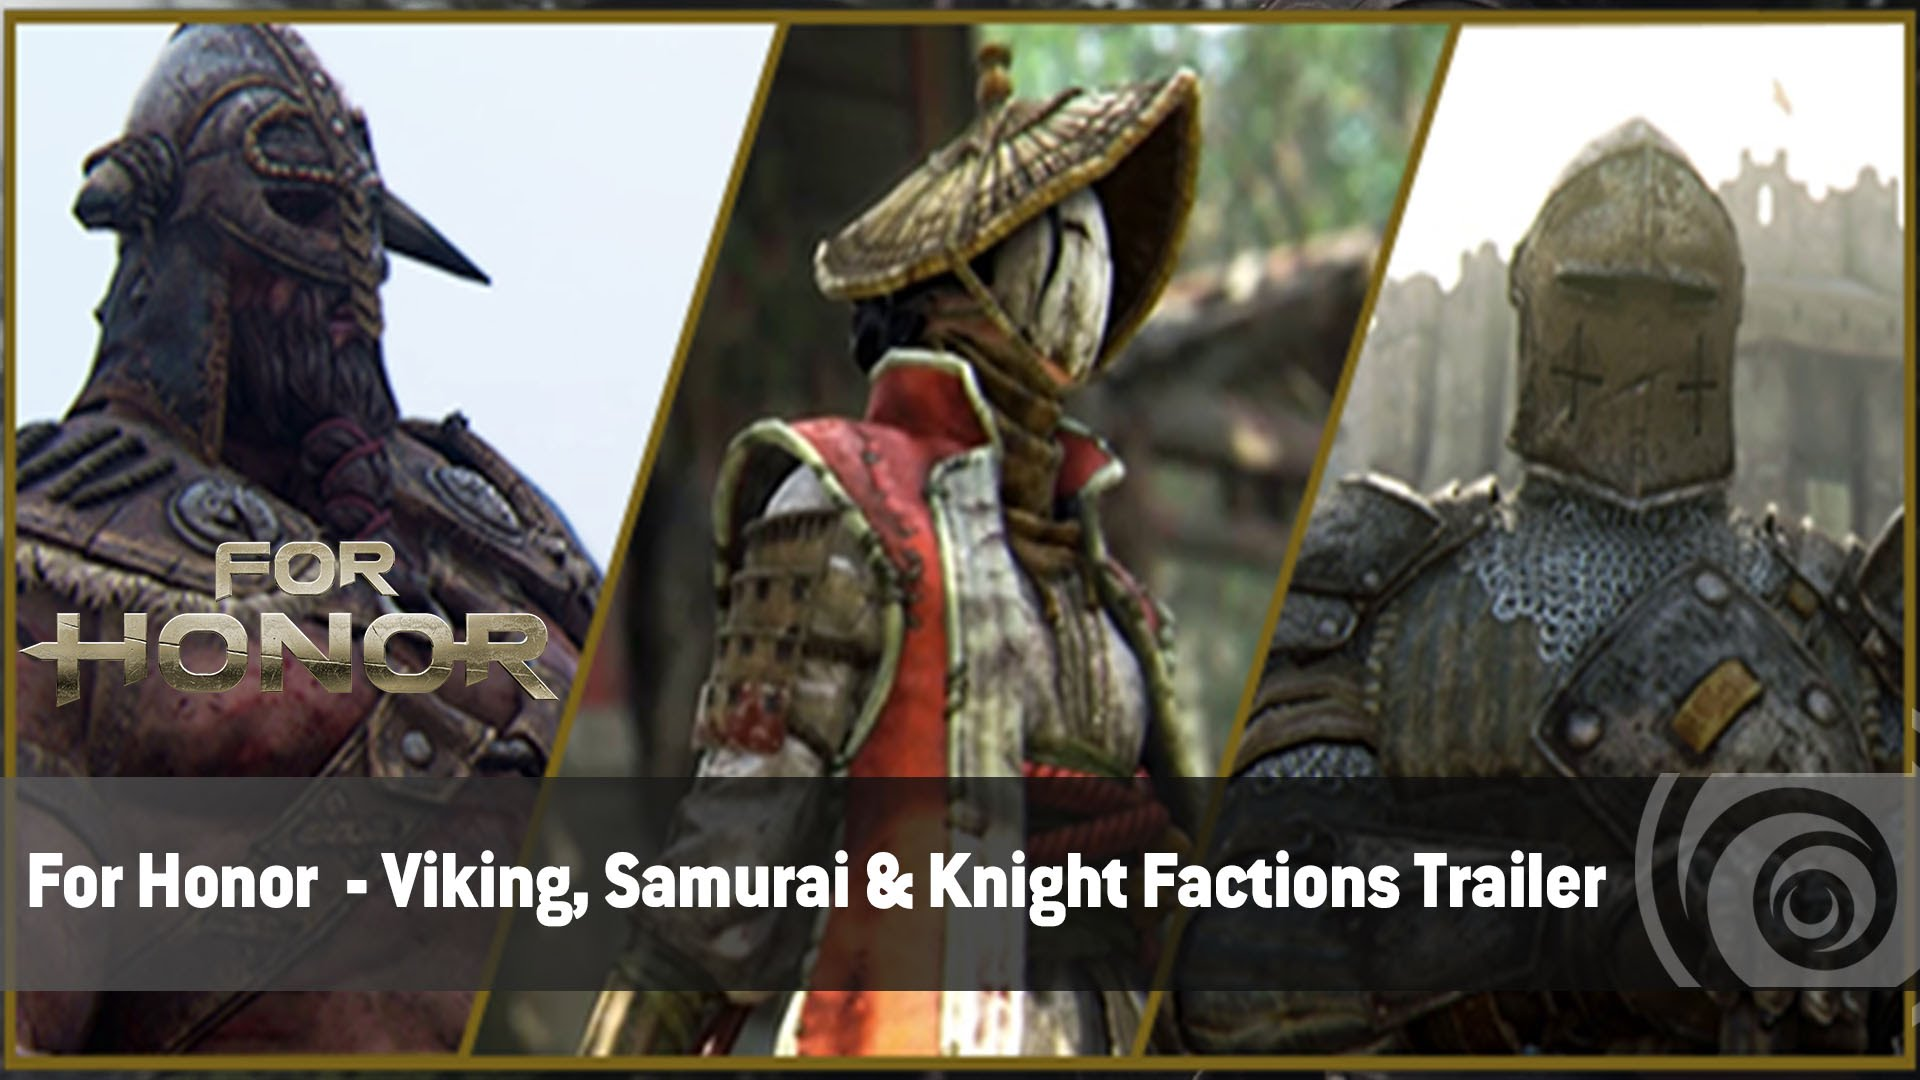 For Honor  - Viking, Samurai & Knight Factions Trailer